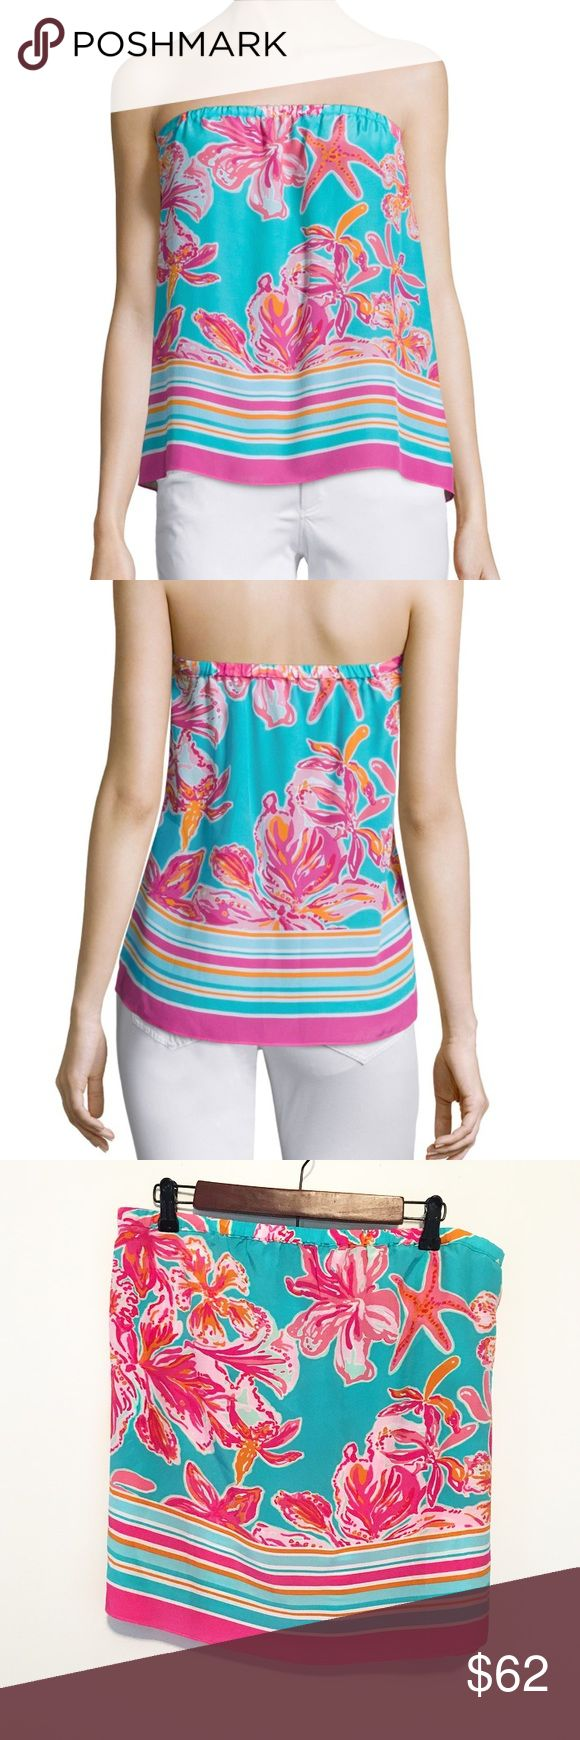 Lilly Pulitzer Sea Blue Via Sunny Odessa Silk Top Summer is around the corner, and here's your new strapless blouse! What tank top tan lines? Lilly Lovers ain't got time for those! Does have a few wrinkles, but otherwise ready to hit the marina! Engineered silk, strapless top. Lilly Pulitzer Tops Blouses